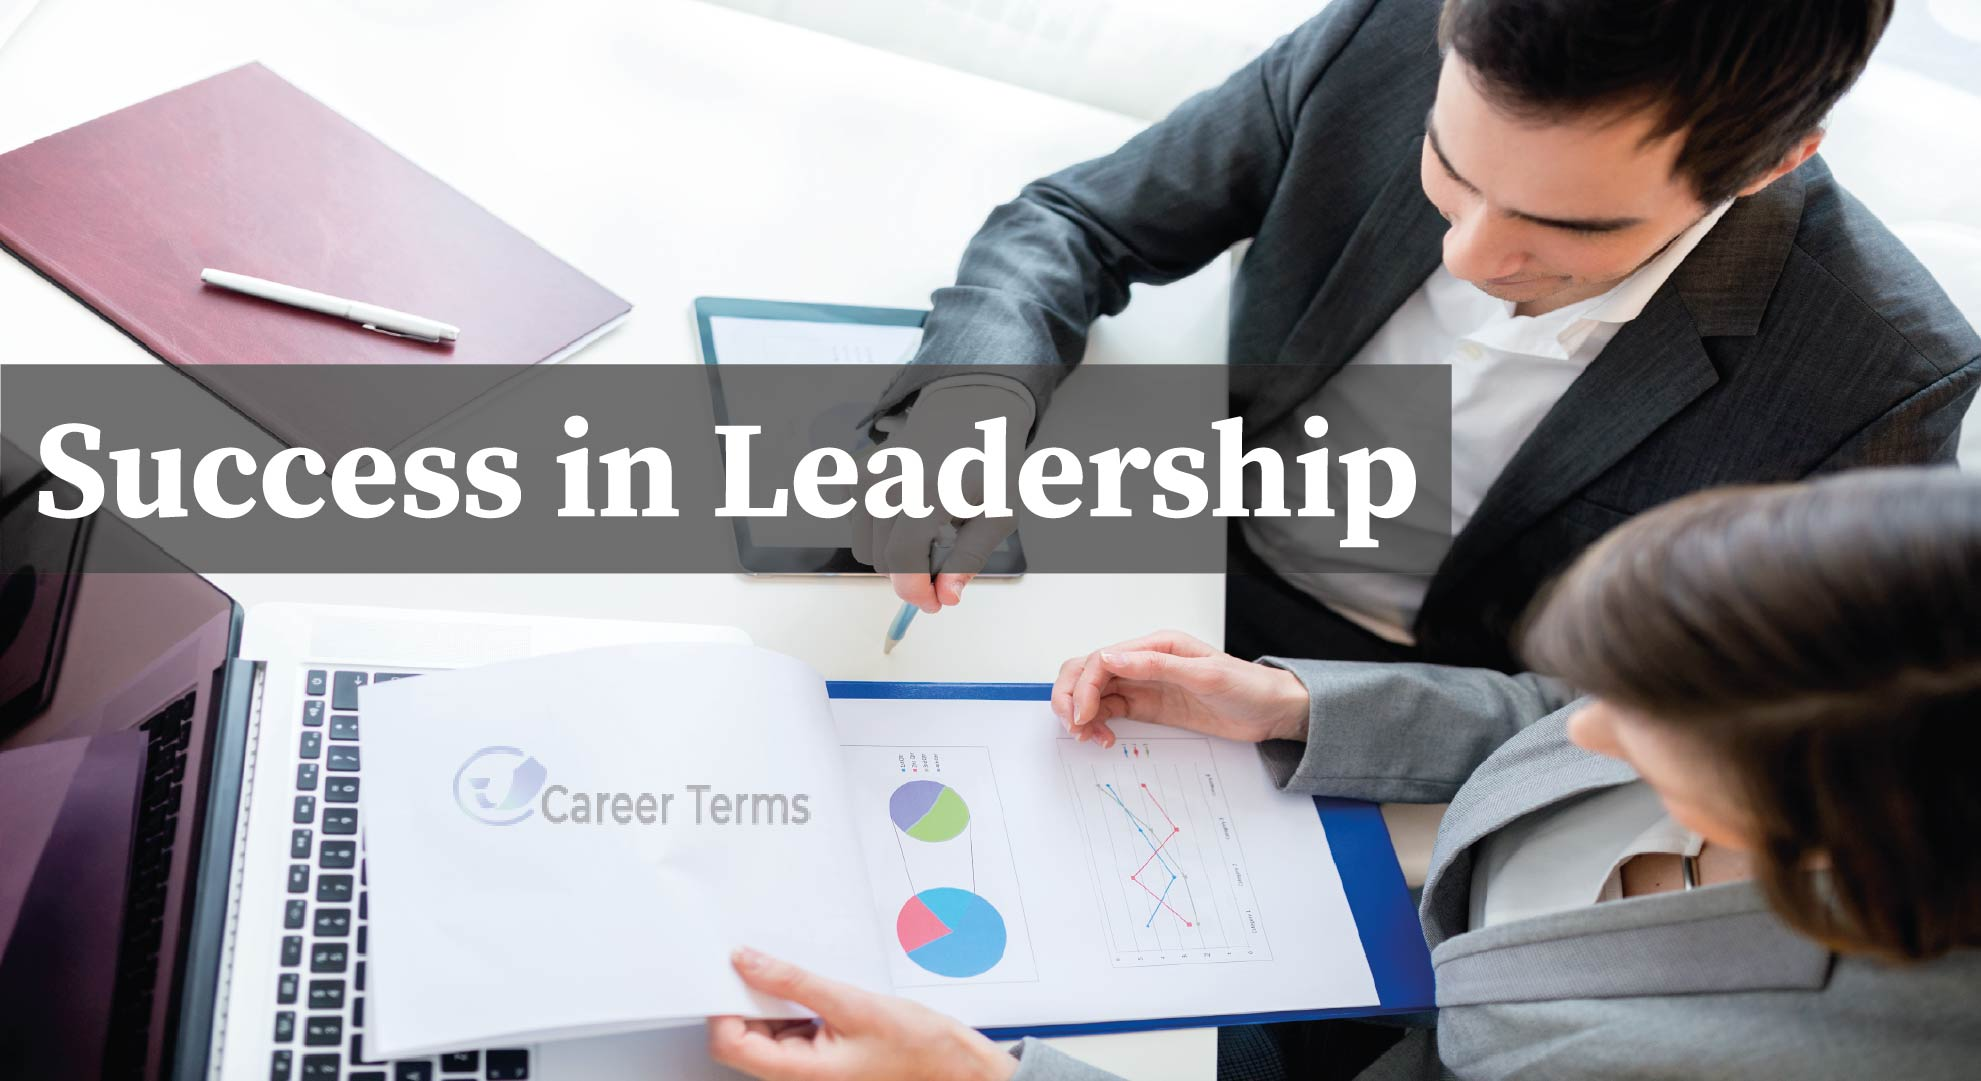 Taking Risks Lead to Success in Leadership